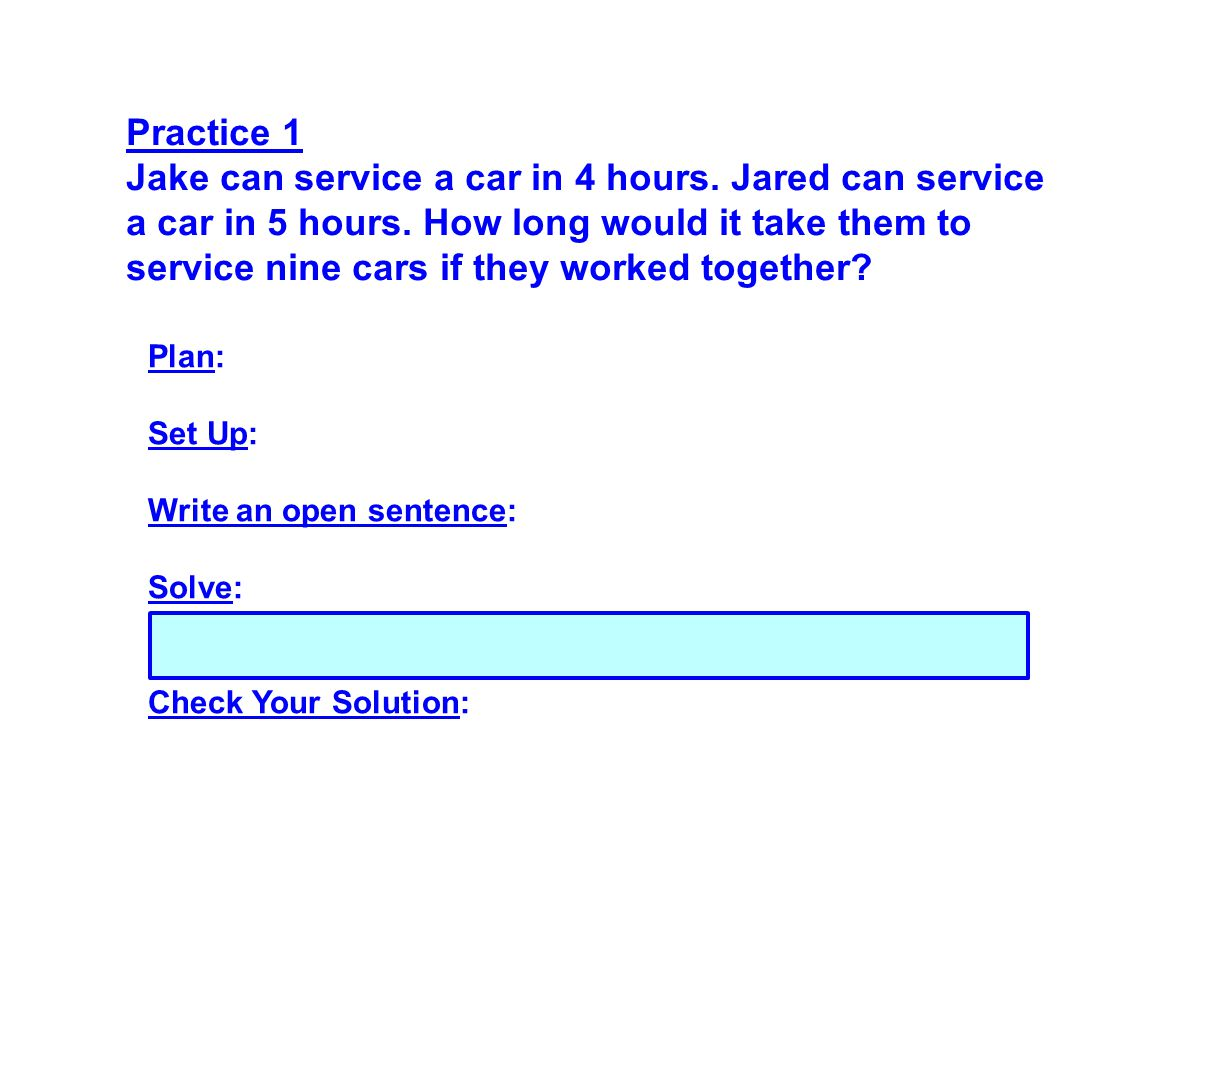 Practice 1 Jake can service a car in 4 hours. Jared can service a car in 5 hours. How long would it take them to service nine cars if they worked toge